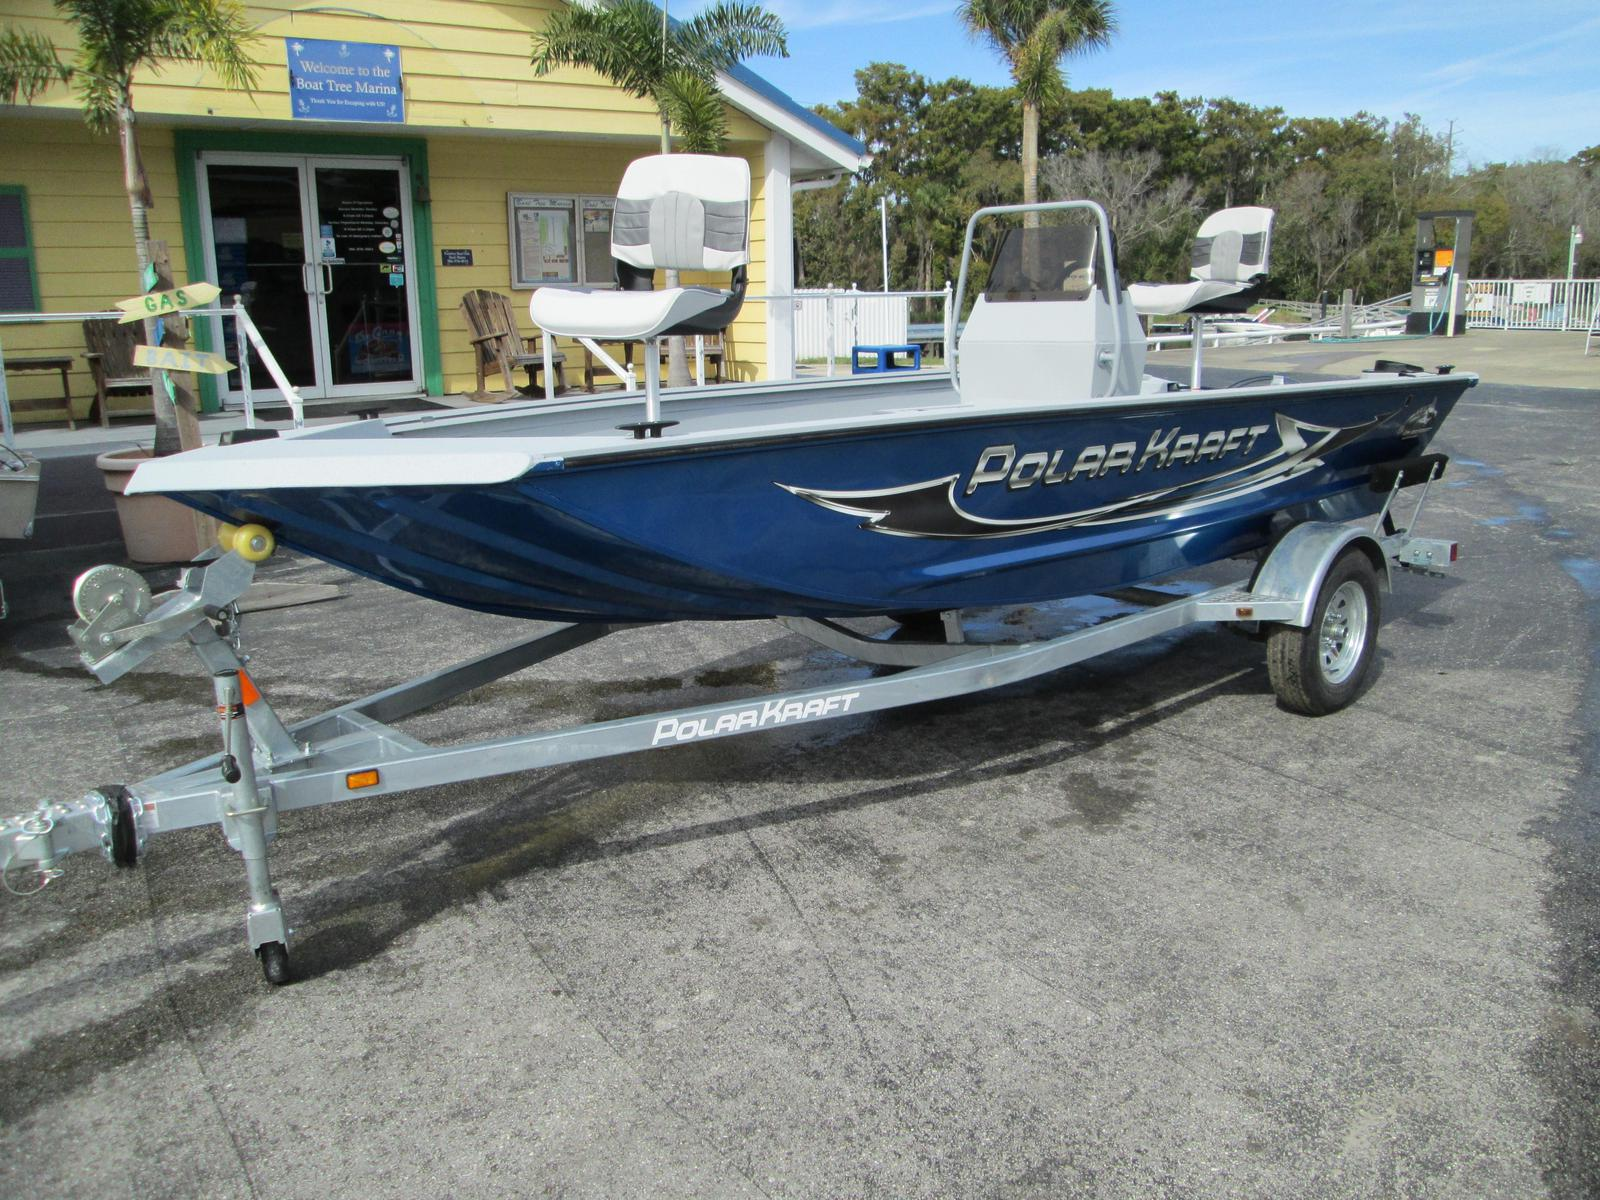 Boats for sale in 32771 - Boat Trader